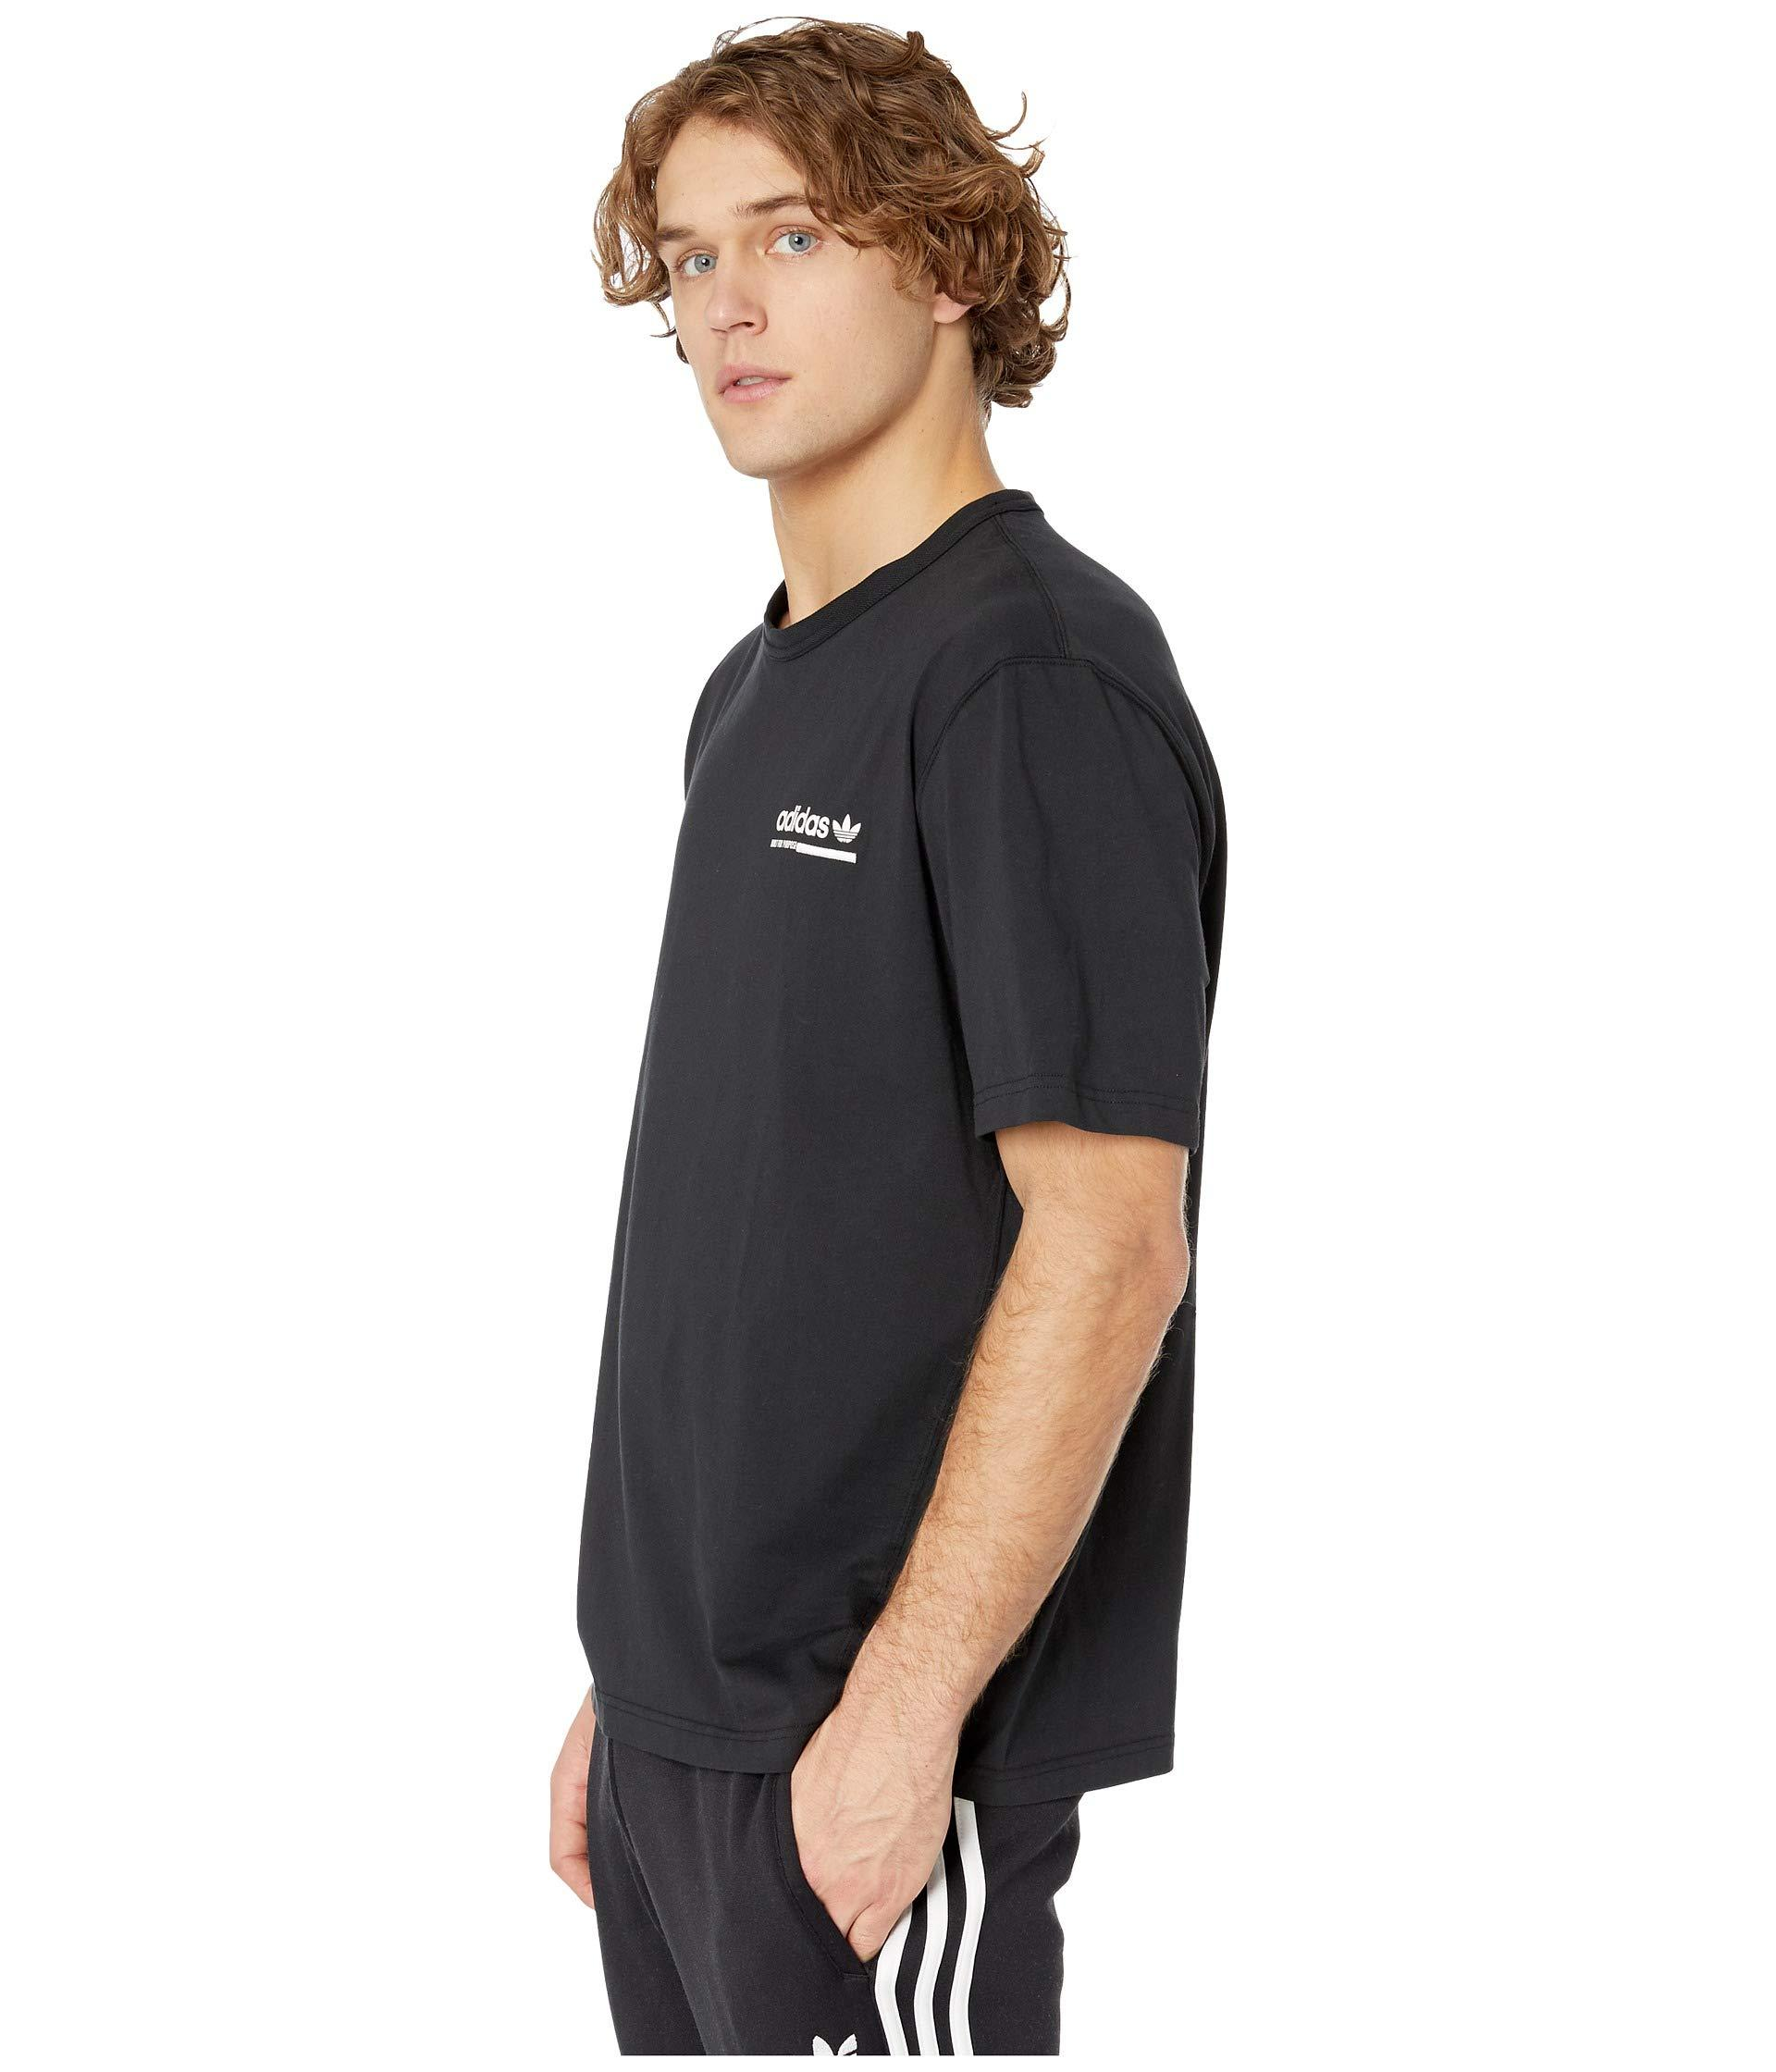 3b2c24c47d6 Adidas Graphic T Shirt Mens – EDGE Engineering and Consulting Limited